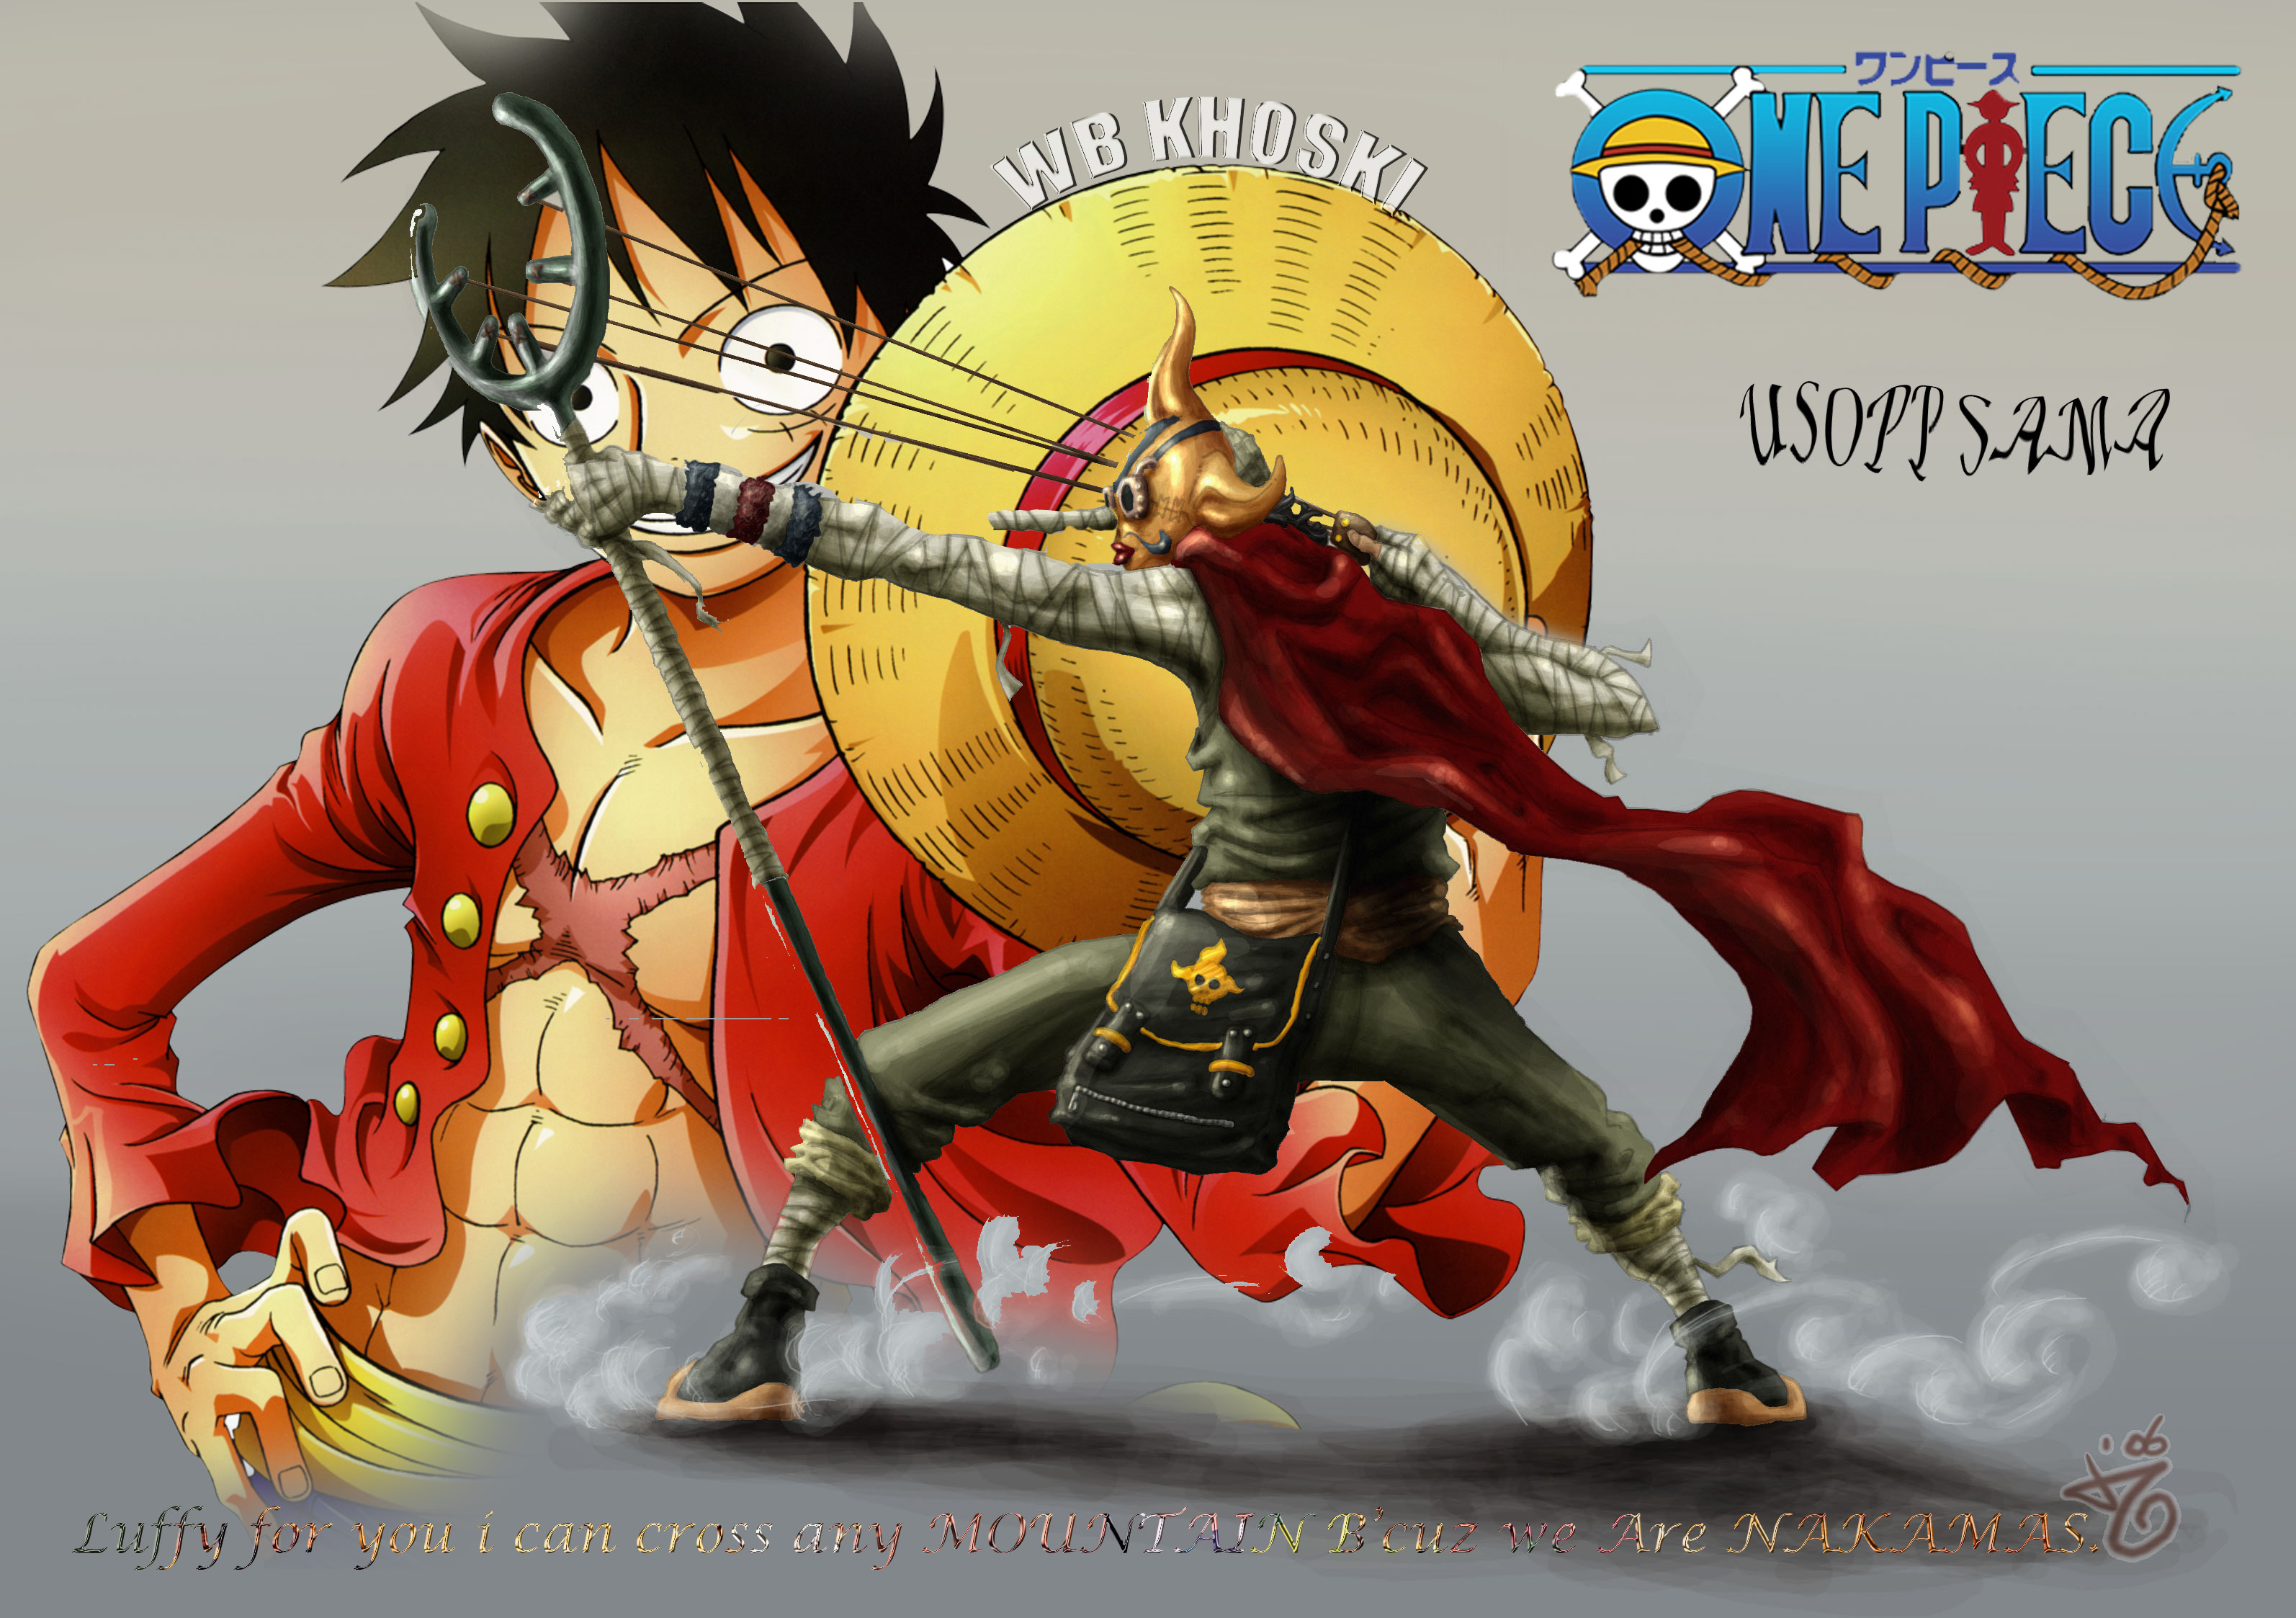 Luffy And Ussop Full HD Papel De Parede And Planos De